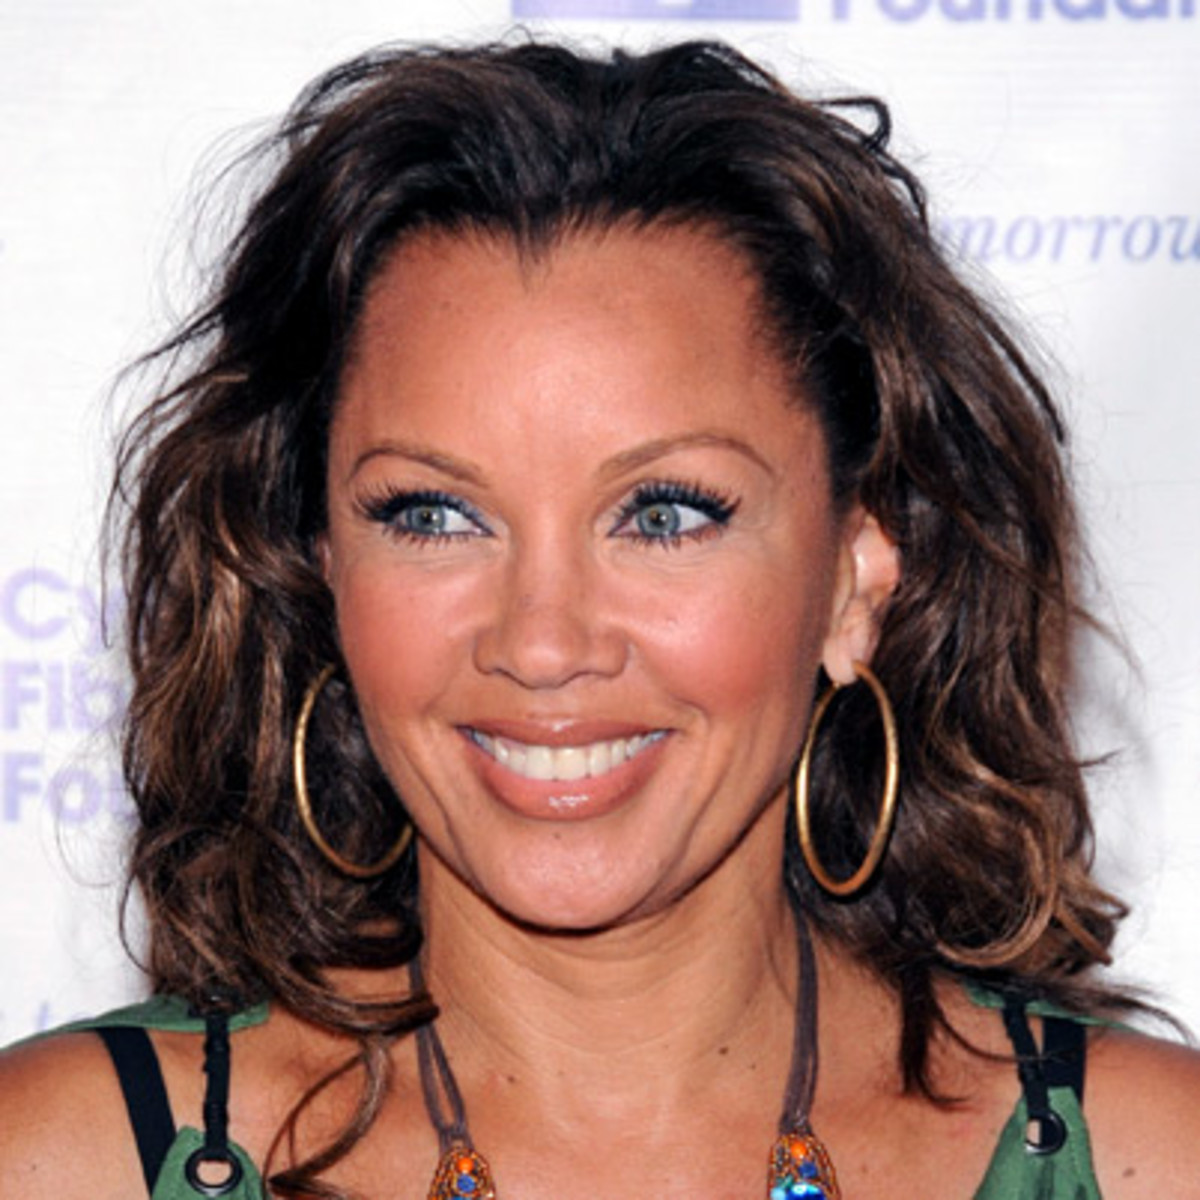 Vanessa Williams nudes (66 photo), Tits, Bikini, Feet, bra 2018